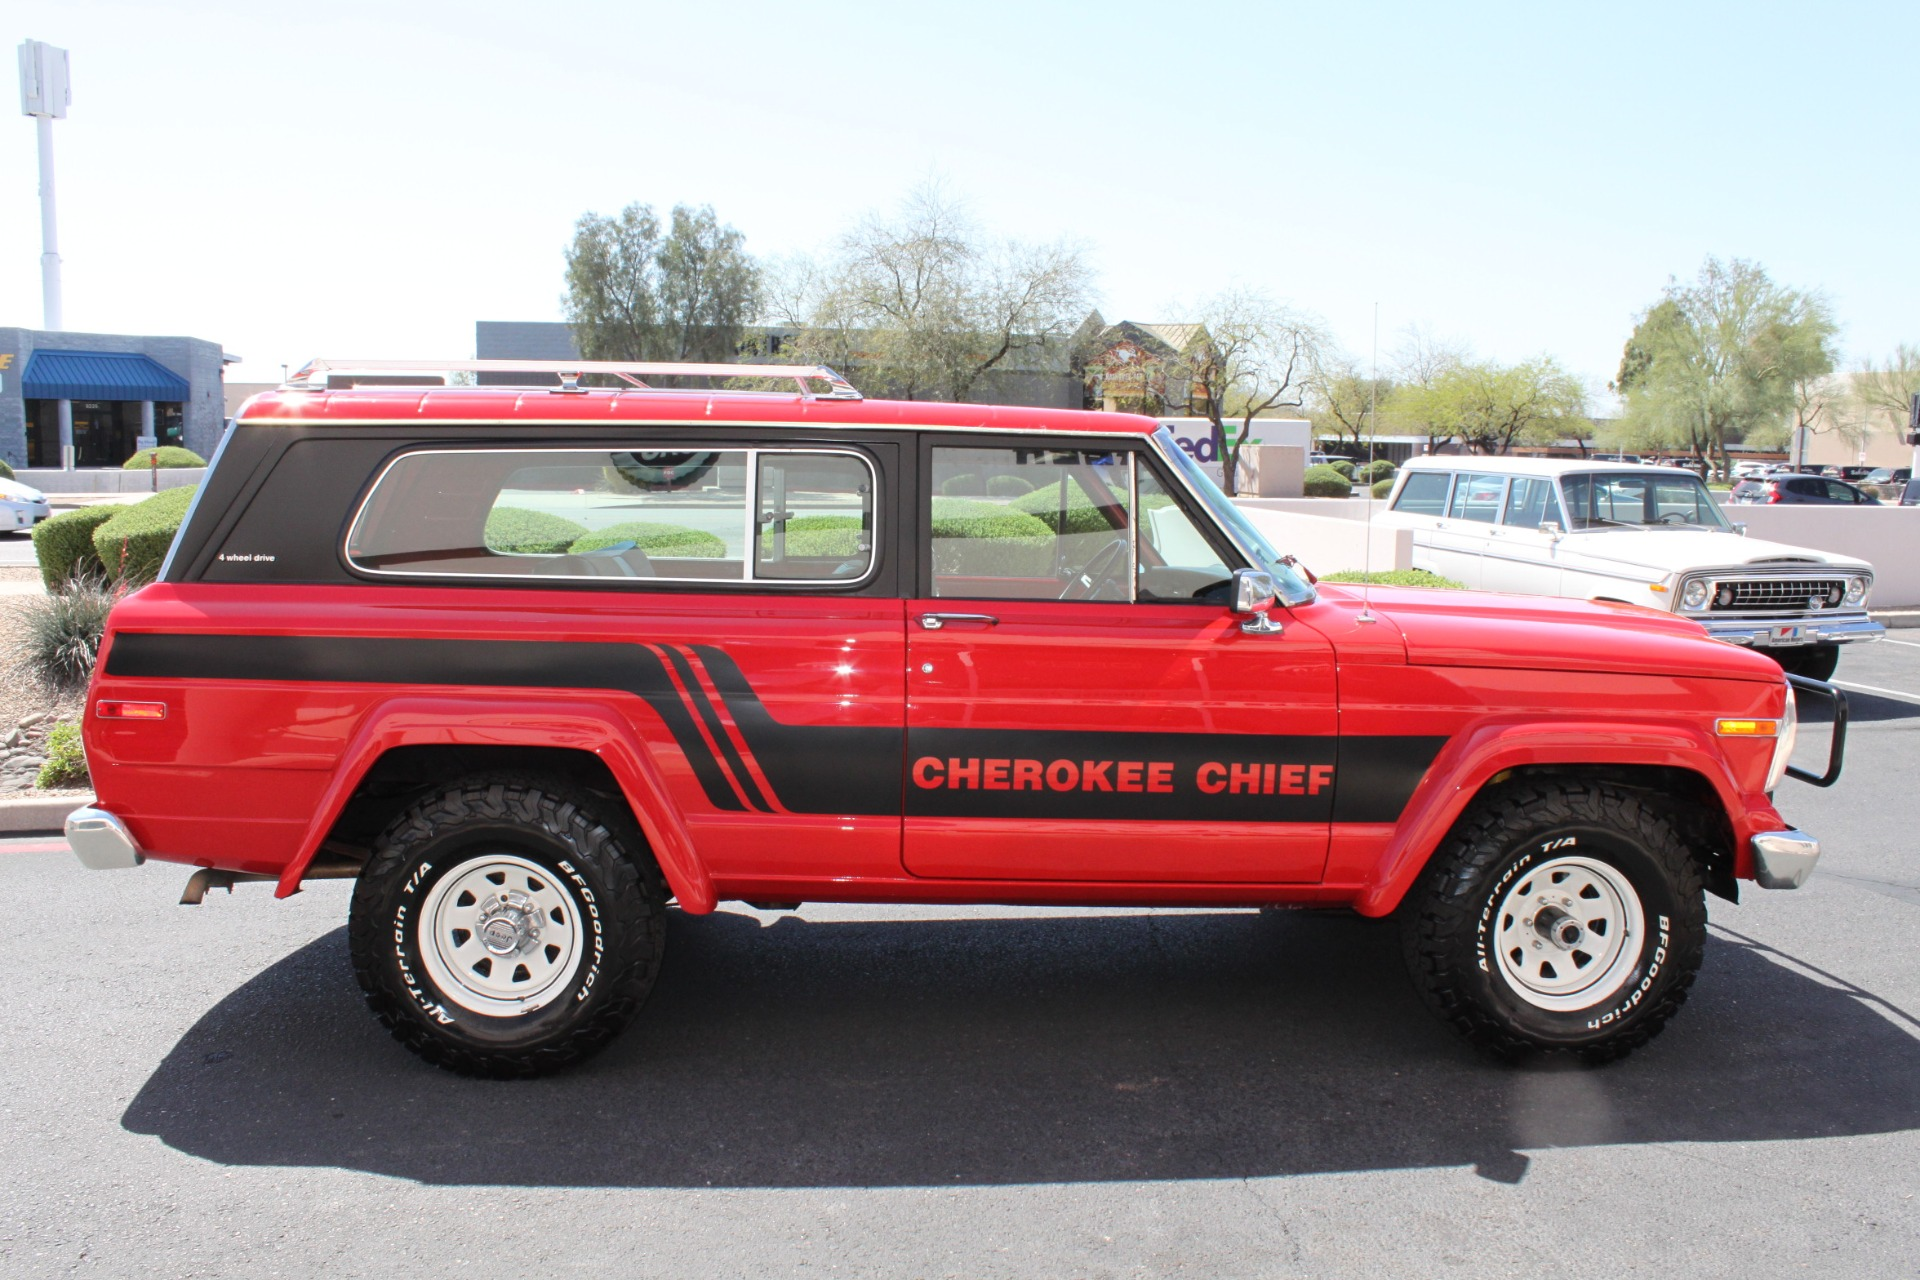 Used-1983-Jeep-Cherokee-4WD-Chief-Chrysler